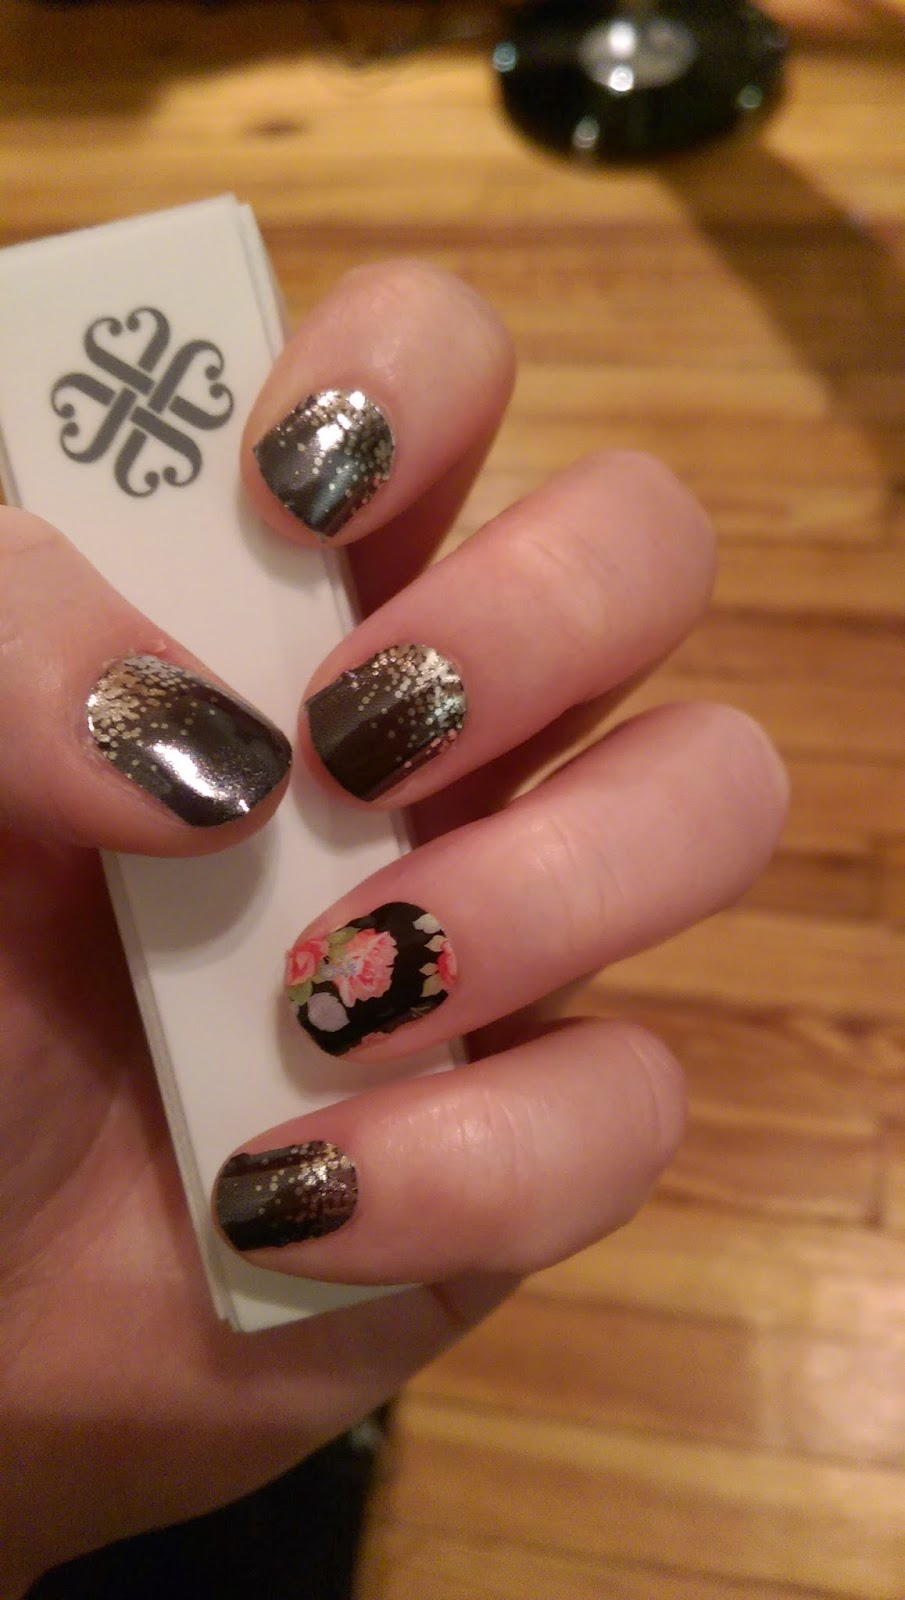 Jamberry nails feeling festive